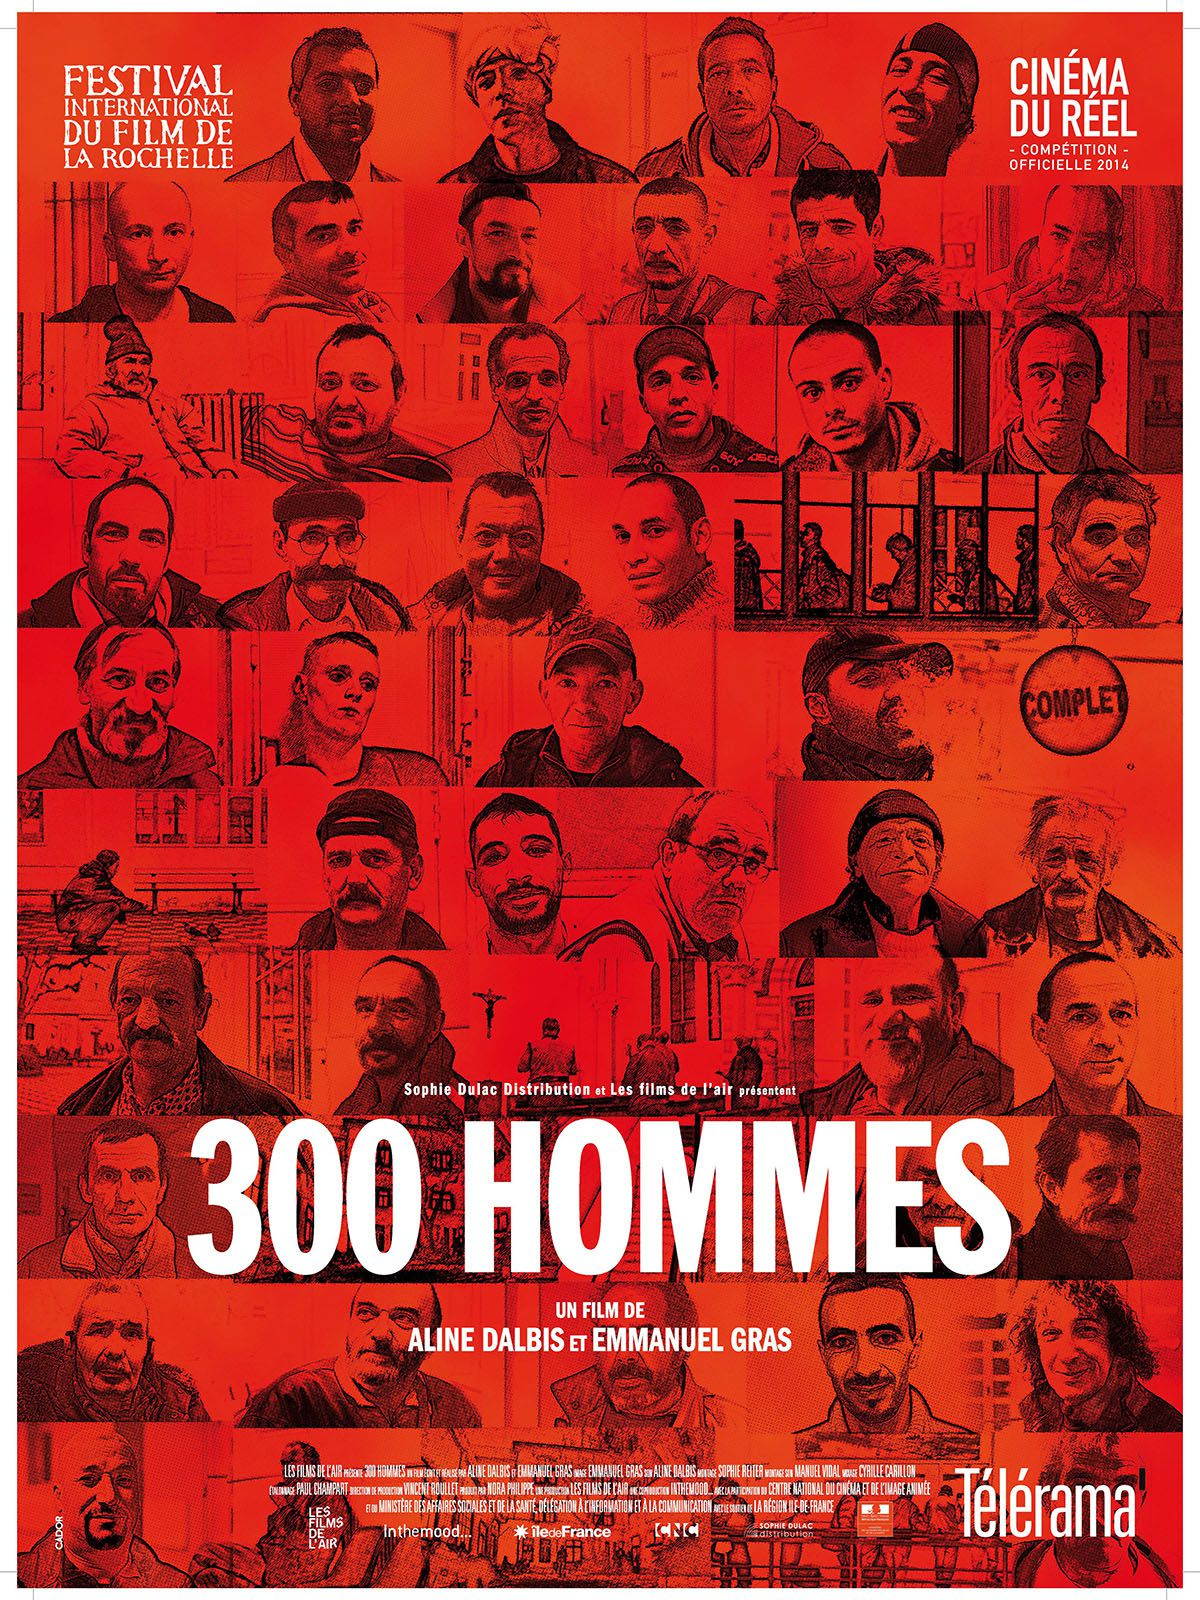 300 hommes - Documentaire (2015)